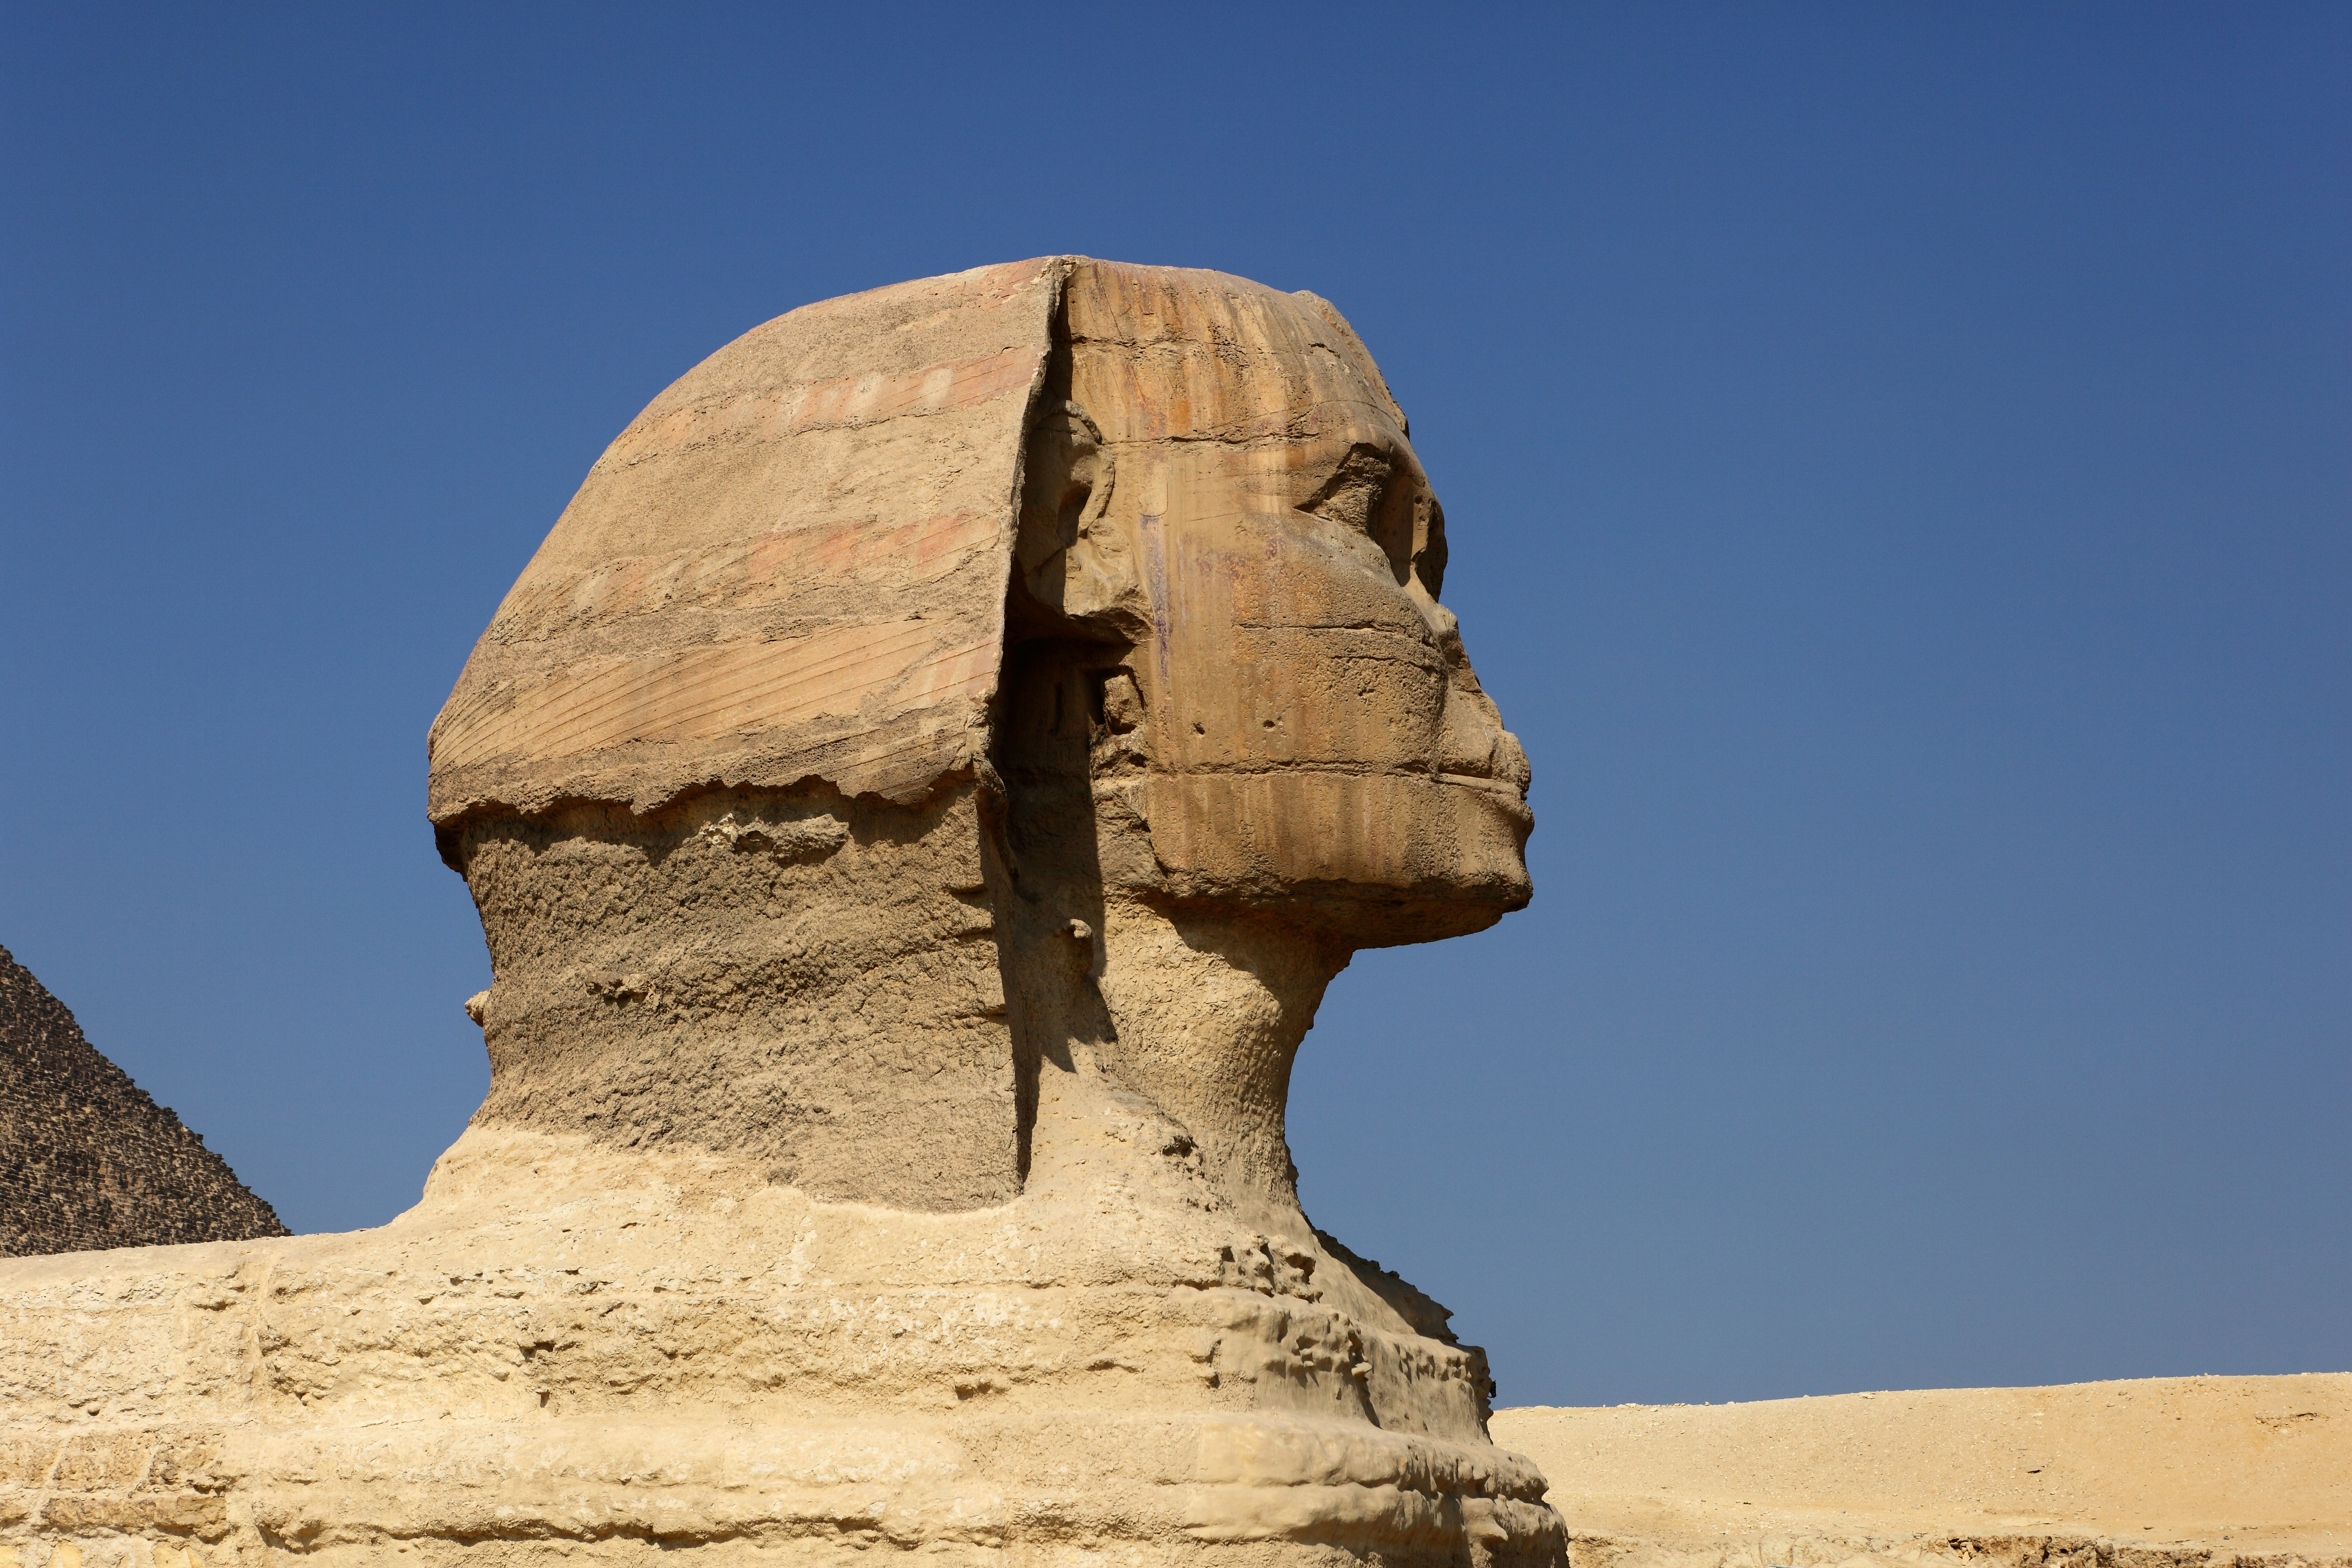 File:The Great Sphinx of Giza.JPG